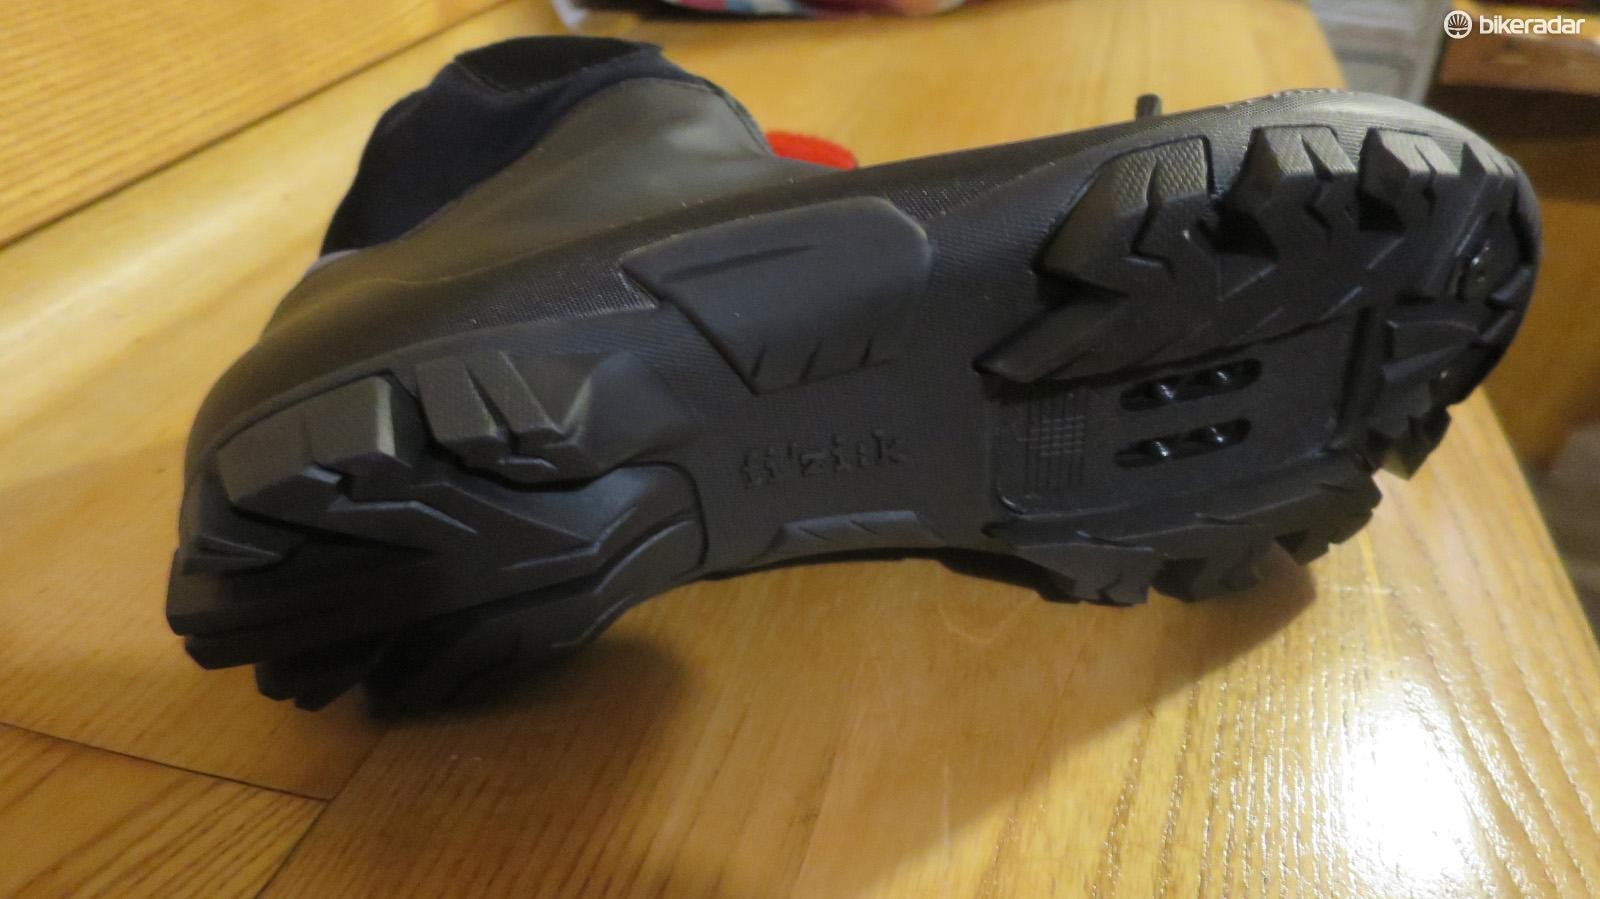 And the X5's sole features much more grip than the standard MTB soles